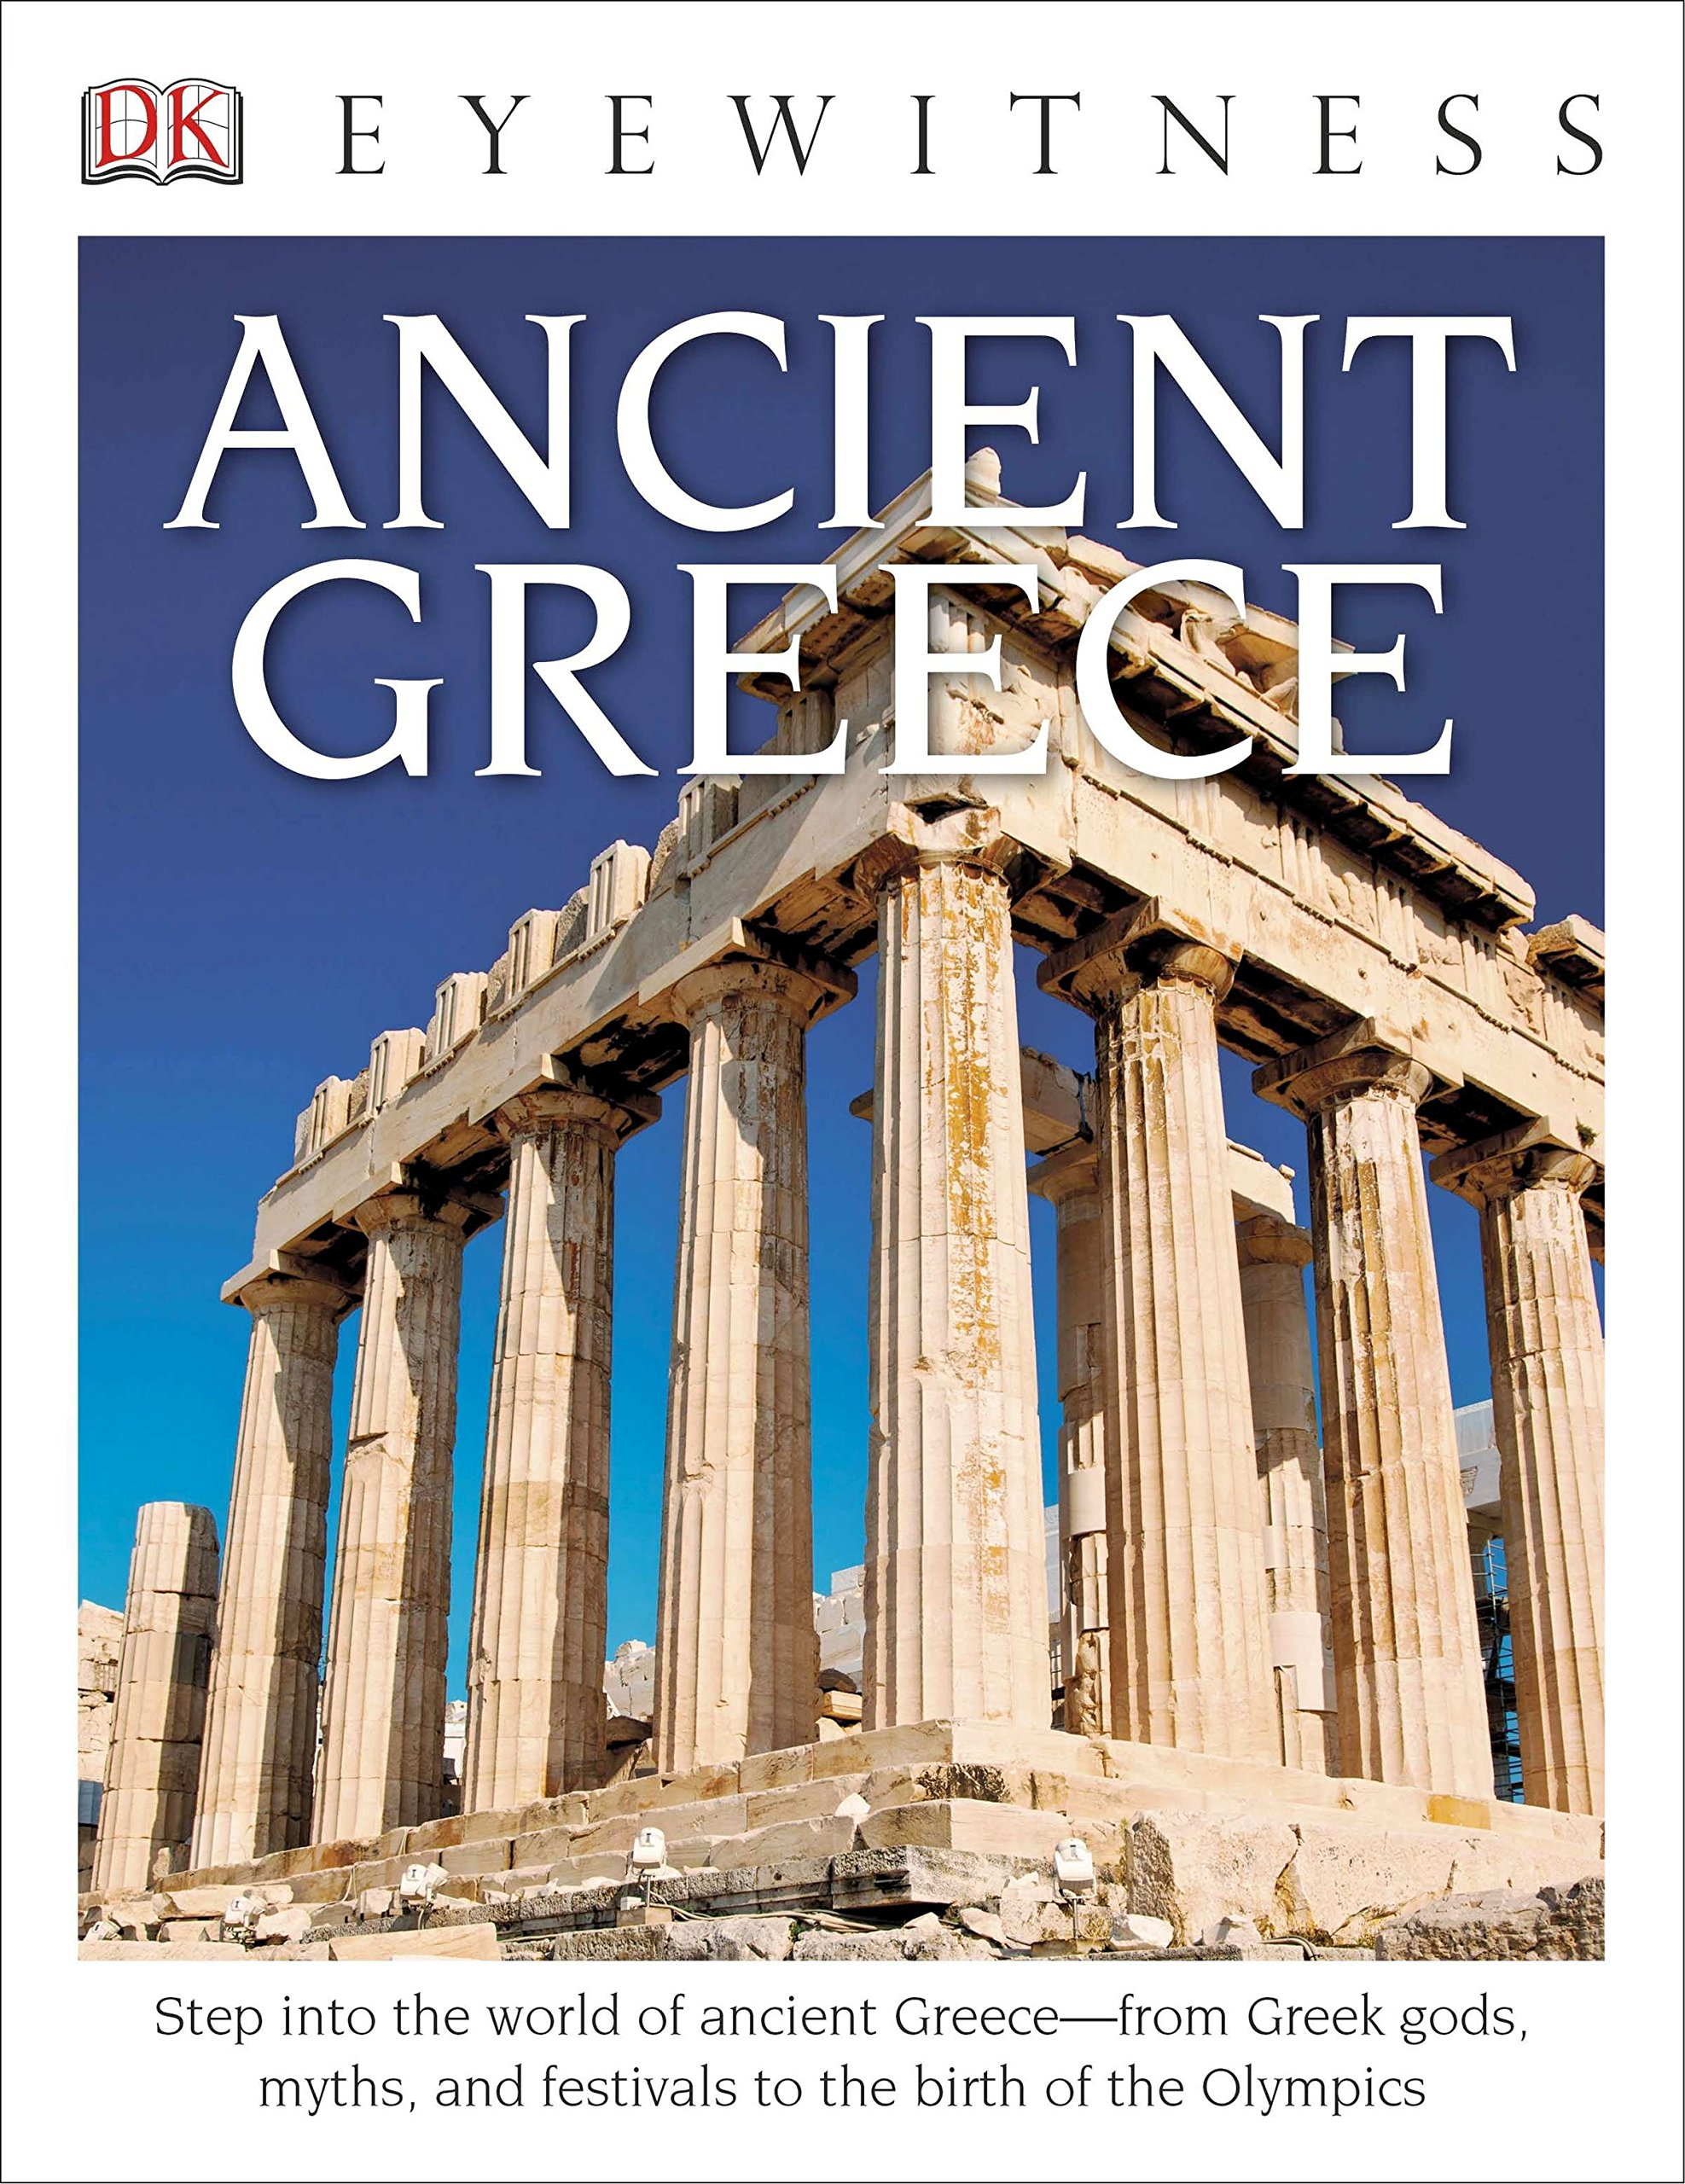 dk eyewitness books ancient greece step into the world of ancient